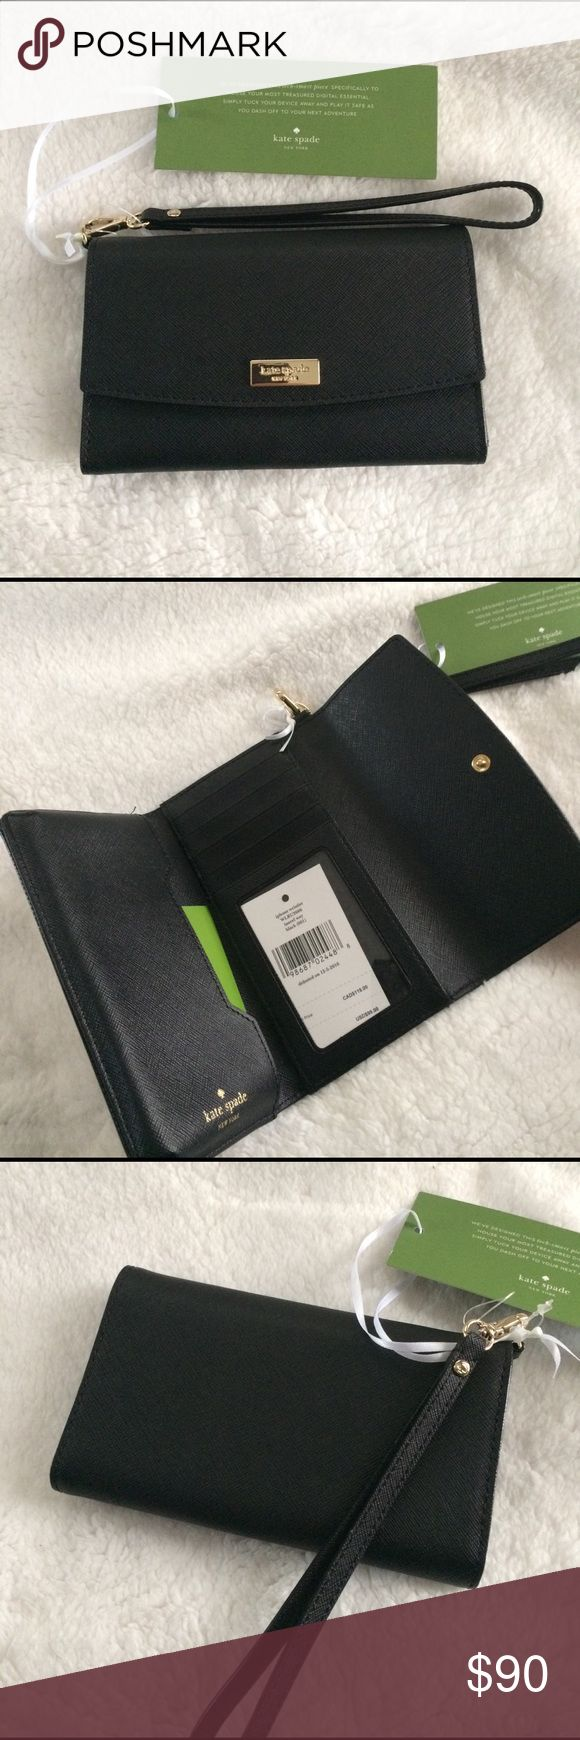 "Kate Spade iPhone Wristlet Kate Spade ""Laurel Way"" IPhone wristlet in black. Saffiano leather and gold detailing. Detachable strap. Phone storage, card slots for cash, credit cards, and ID. New with tags.   Fits iPhone 6/6S/7 and comparable sized cell phones. Size:6.25 (L) x 3.75 (H) x 1 (W) kate spade Bags Clutches & Wristlets"